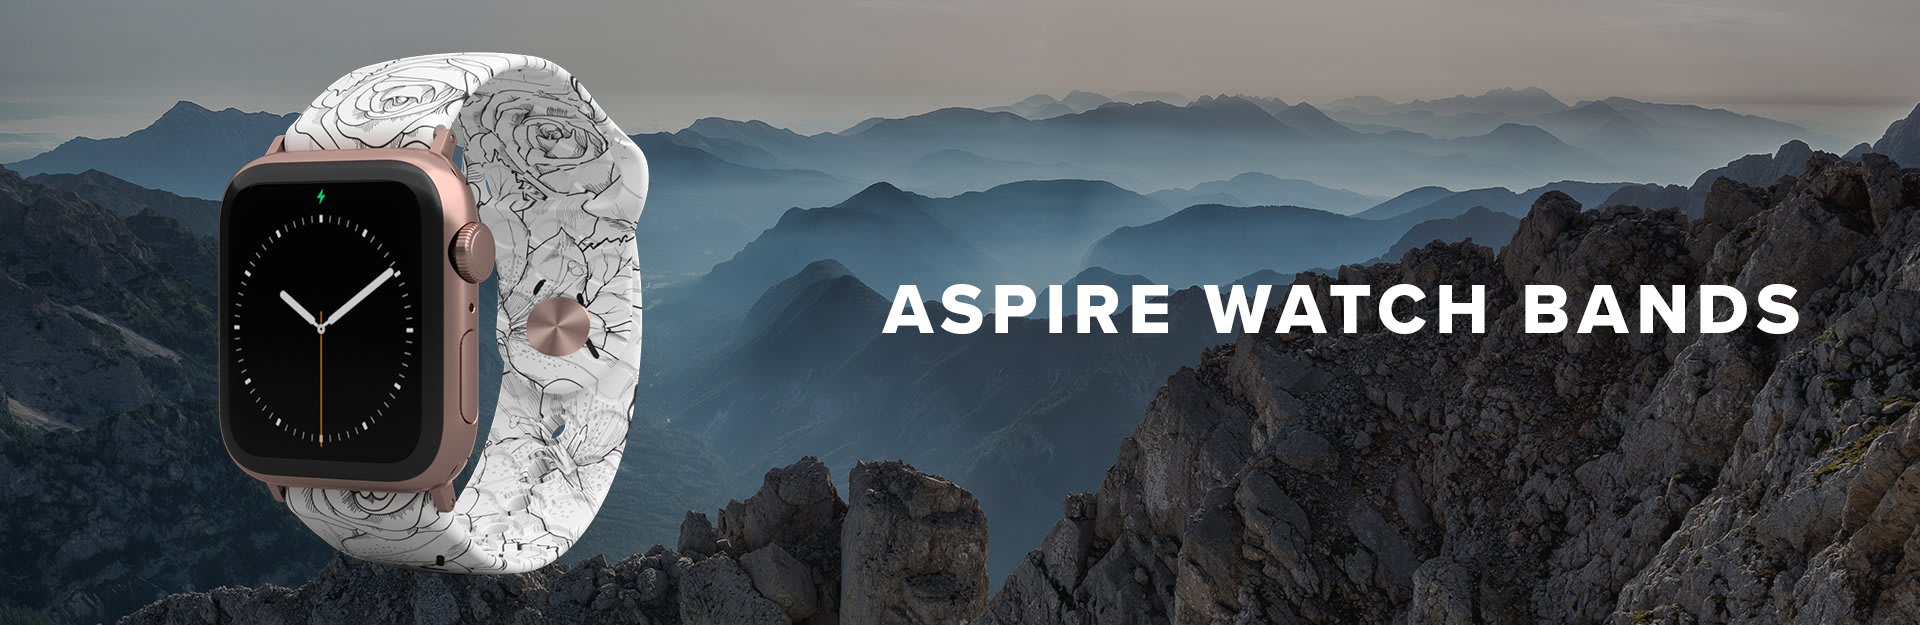 Aspire Watch Bands, a Winter Rose watch band is overlaid on very rocky mountains